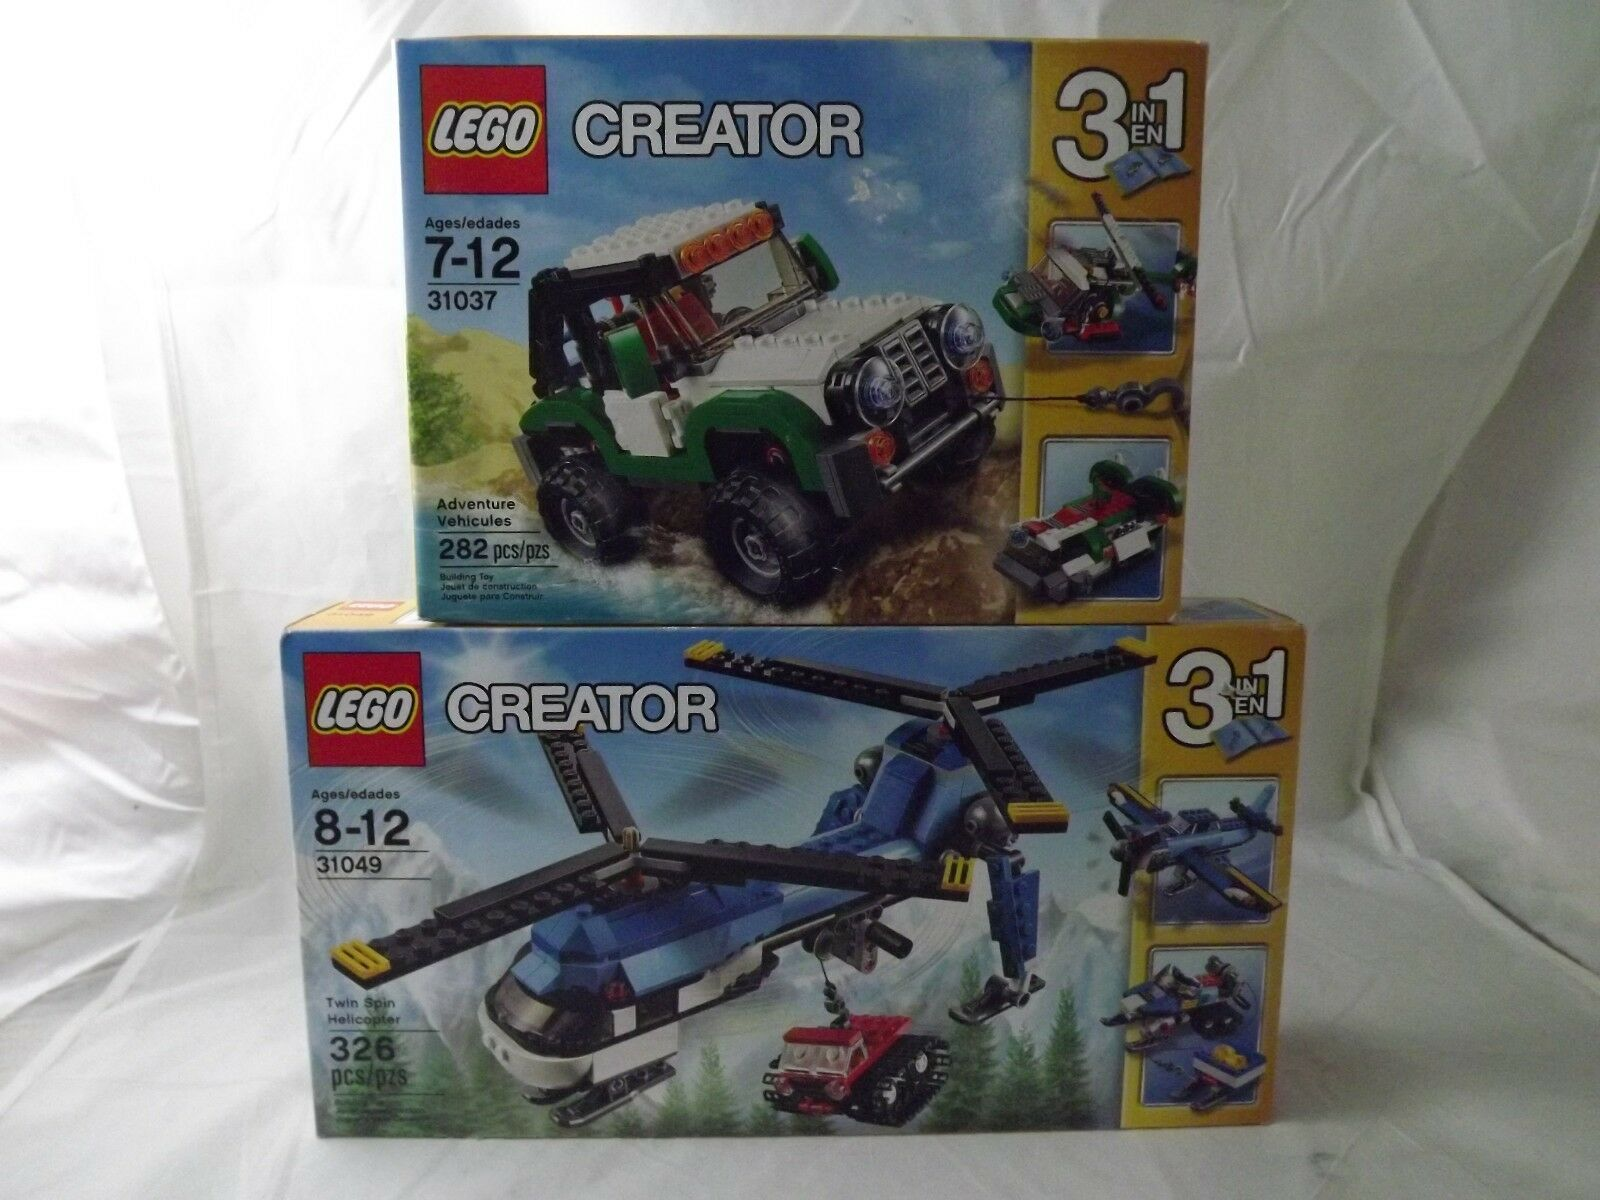 2 NEW LEGO Creator Sets 31037 Adventure Vehicles &  31049 Twin Spin Helicopter